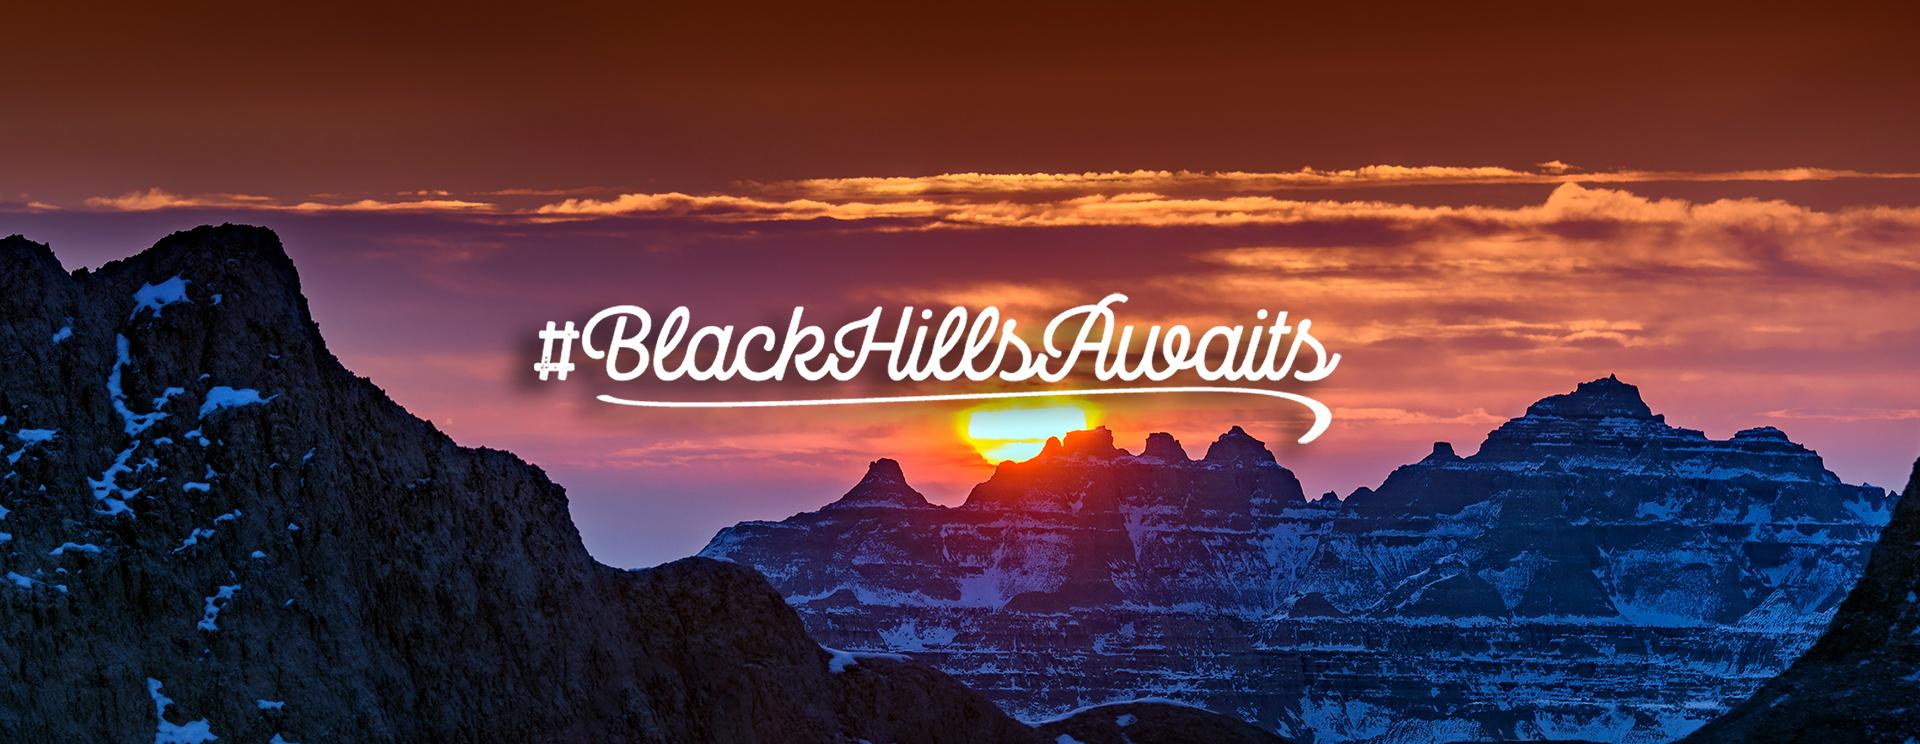 Slow Down With 5 Awe-Inspiring Black Hills and Badlands Photos | #BlackHillsAwaits